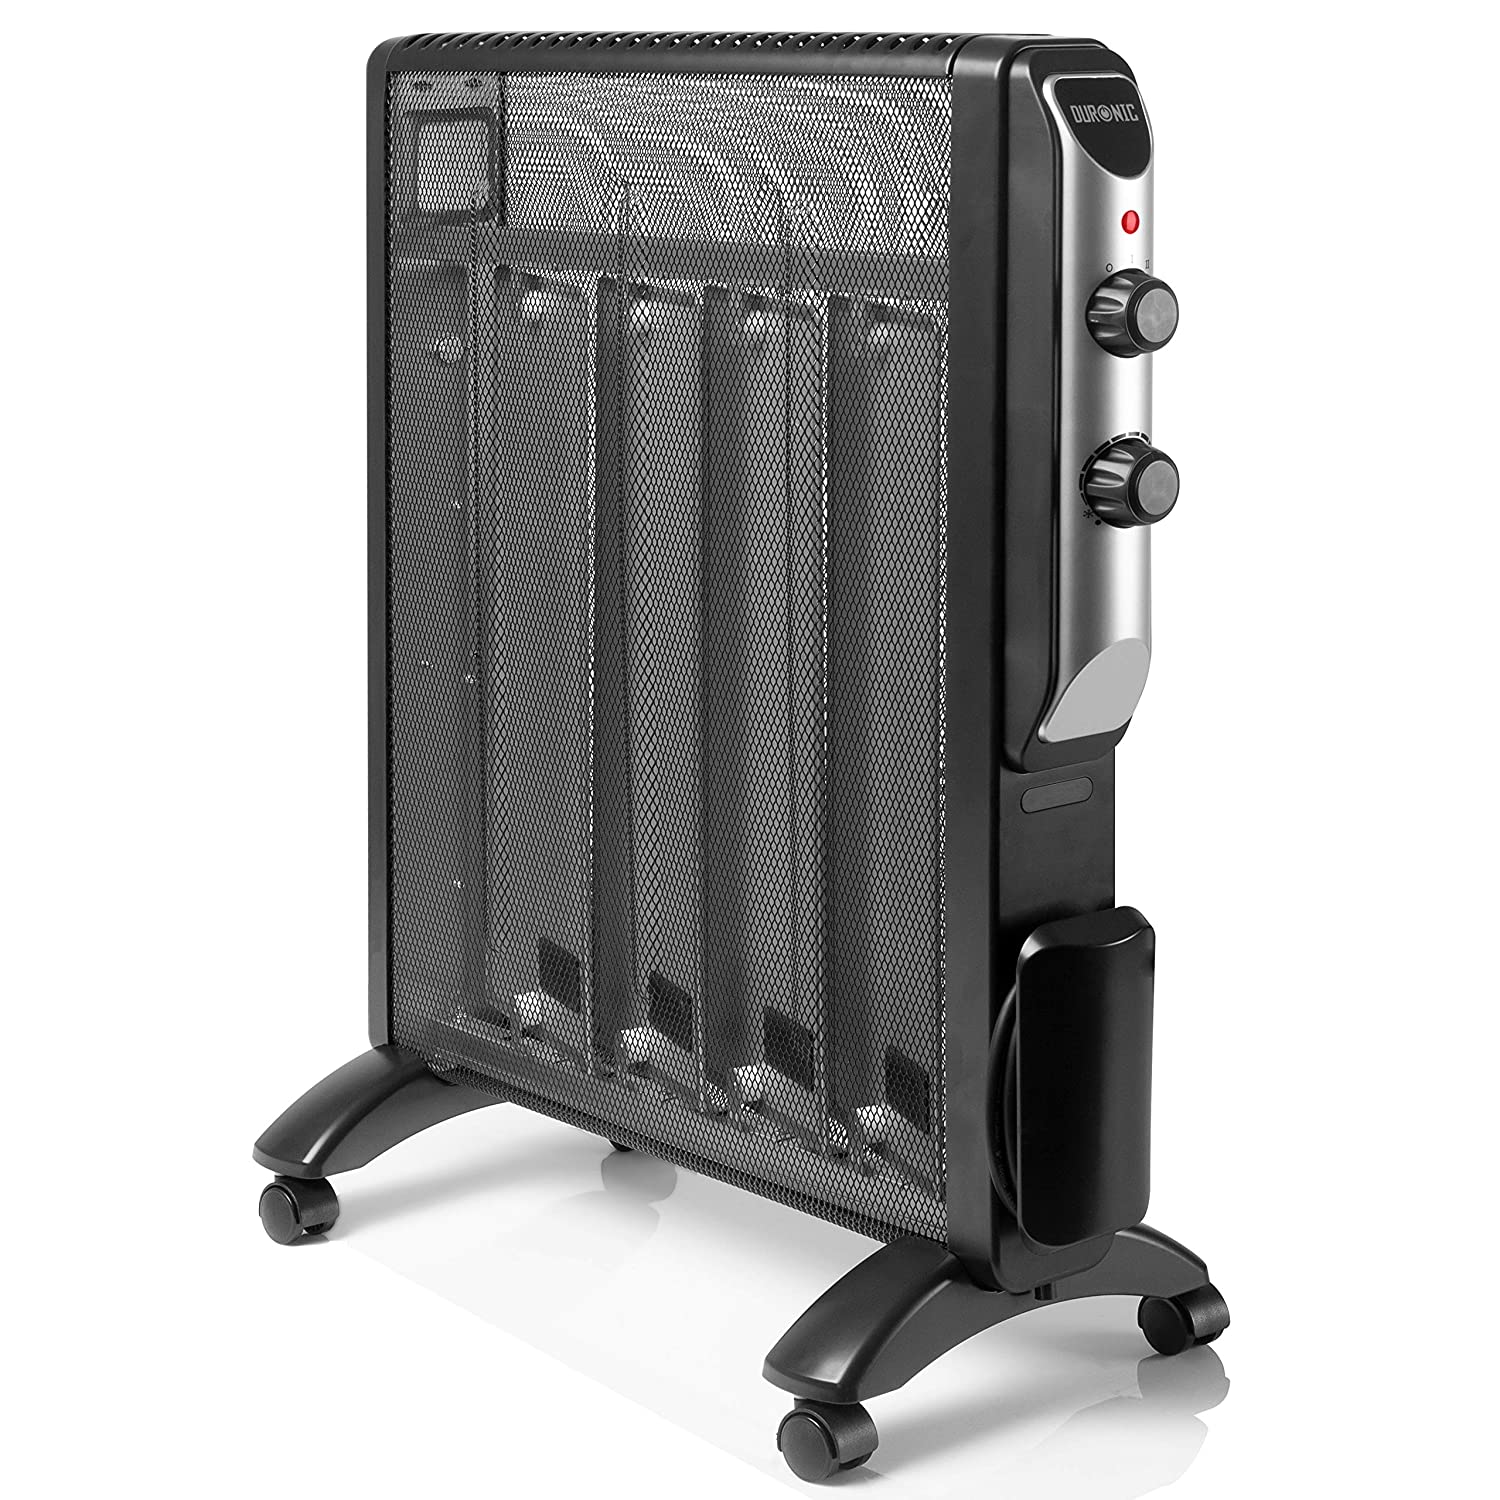 Duronic (Certified Refurbished) HV220 Slimline Black Mica Panel 2.0KW Radiant Convector Heater with Thermostat - Oil Free Heater - Heats up in 1 Minute